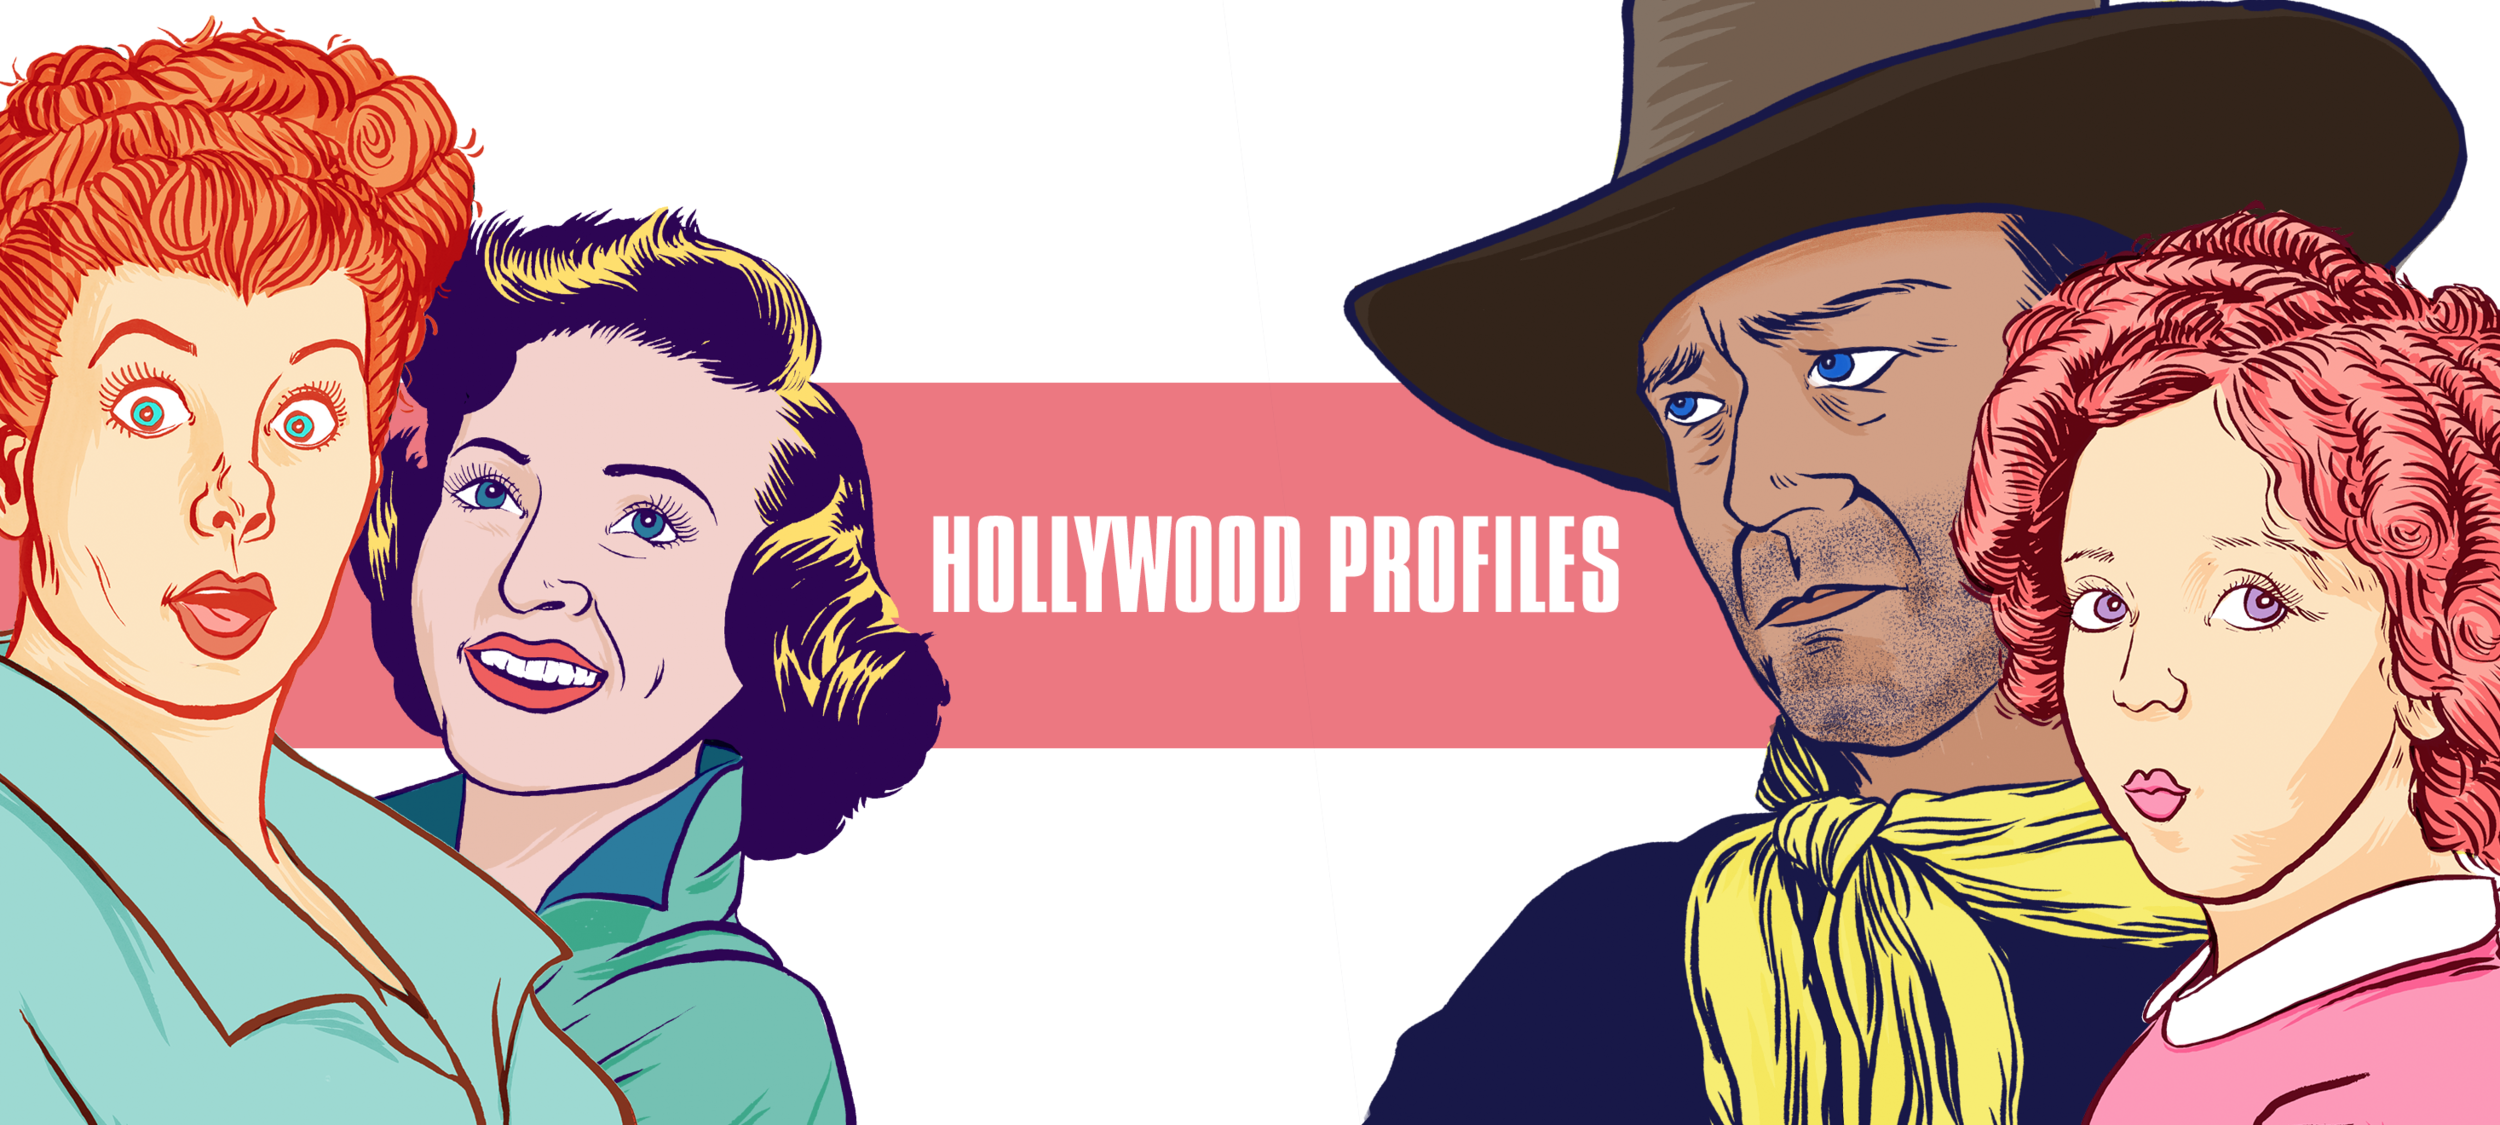 Hollywood Profiles